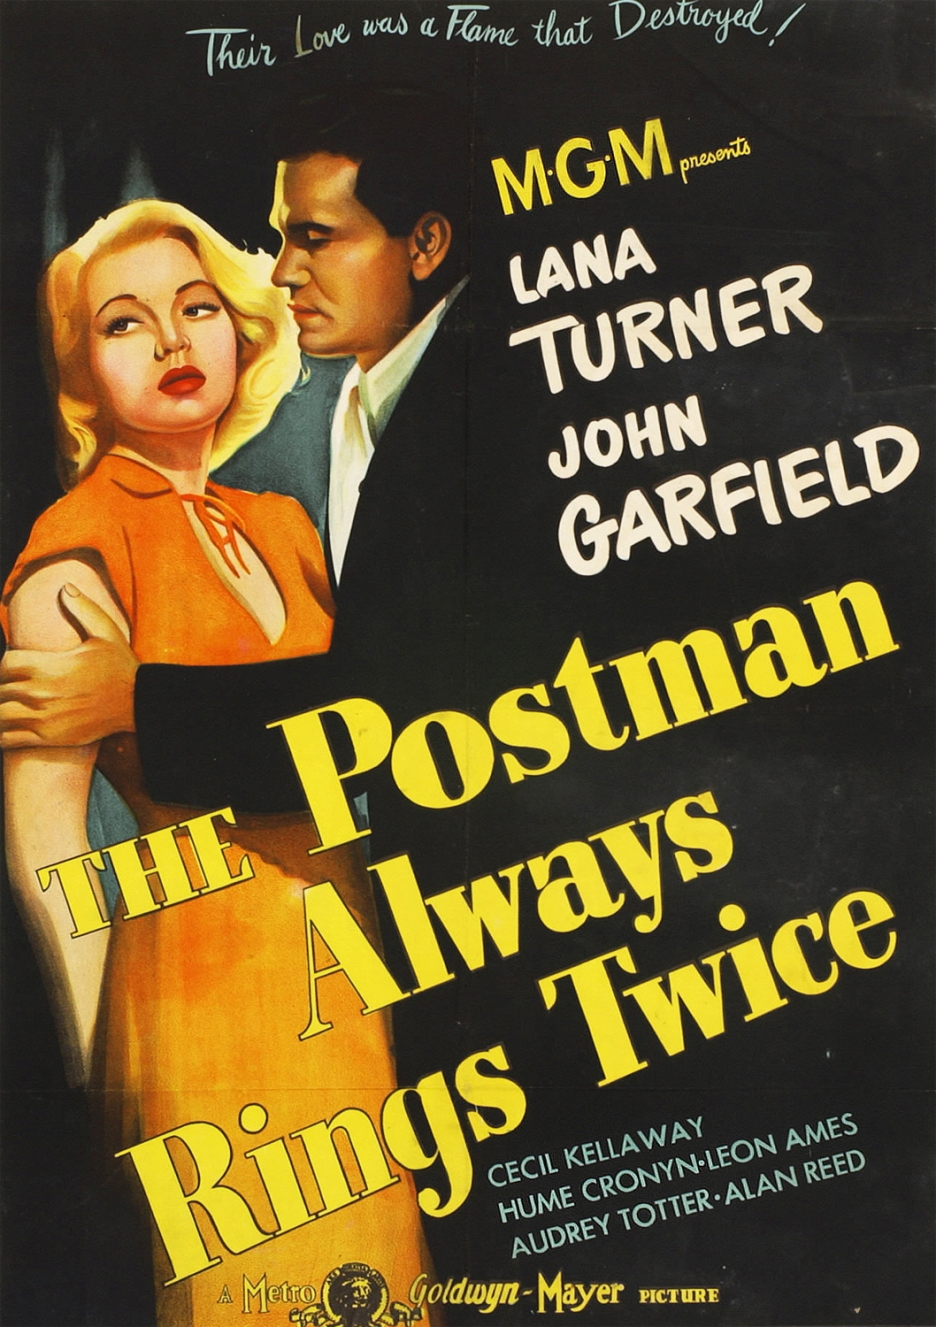 Garfield Postman Always Rings Twice